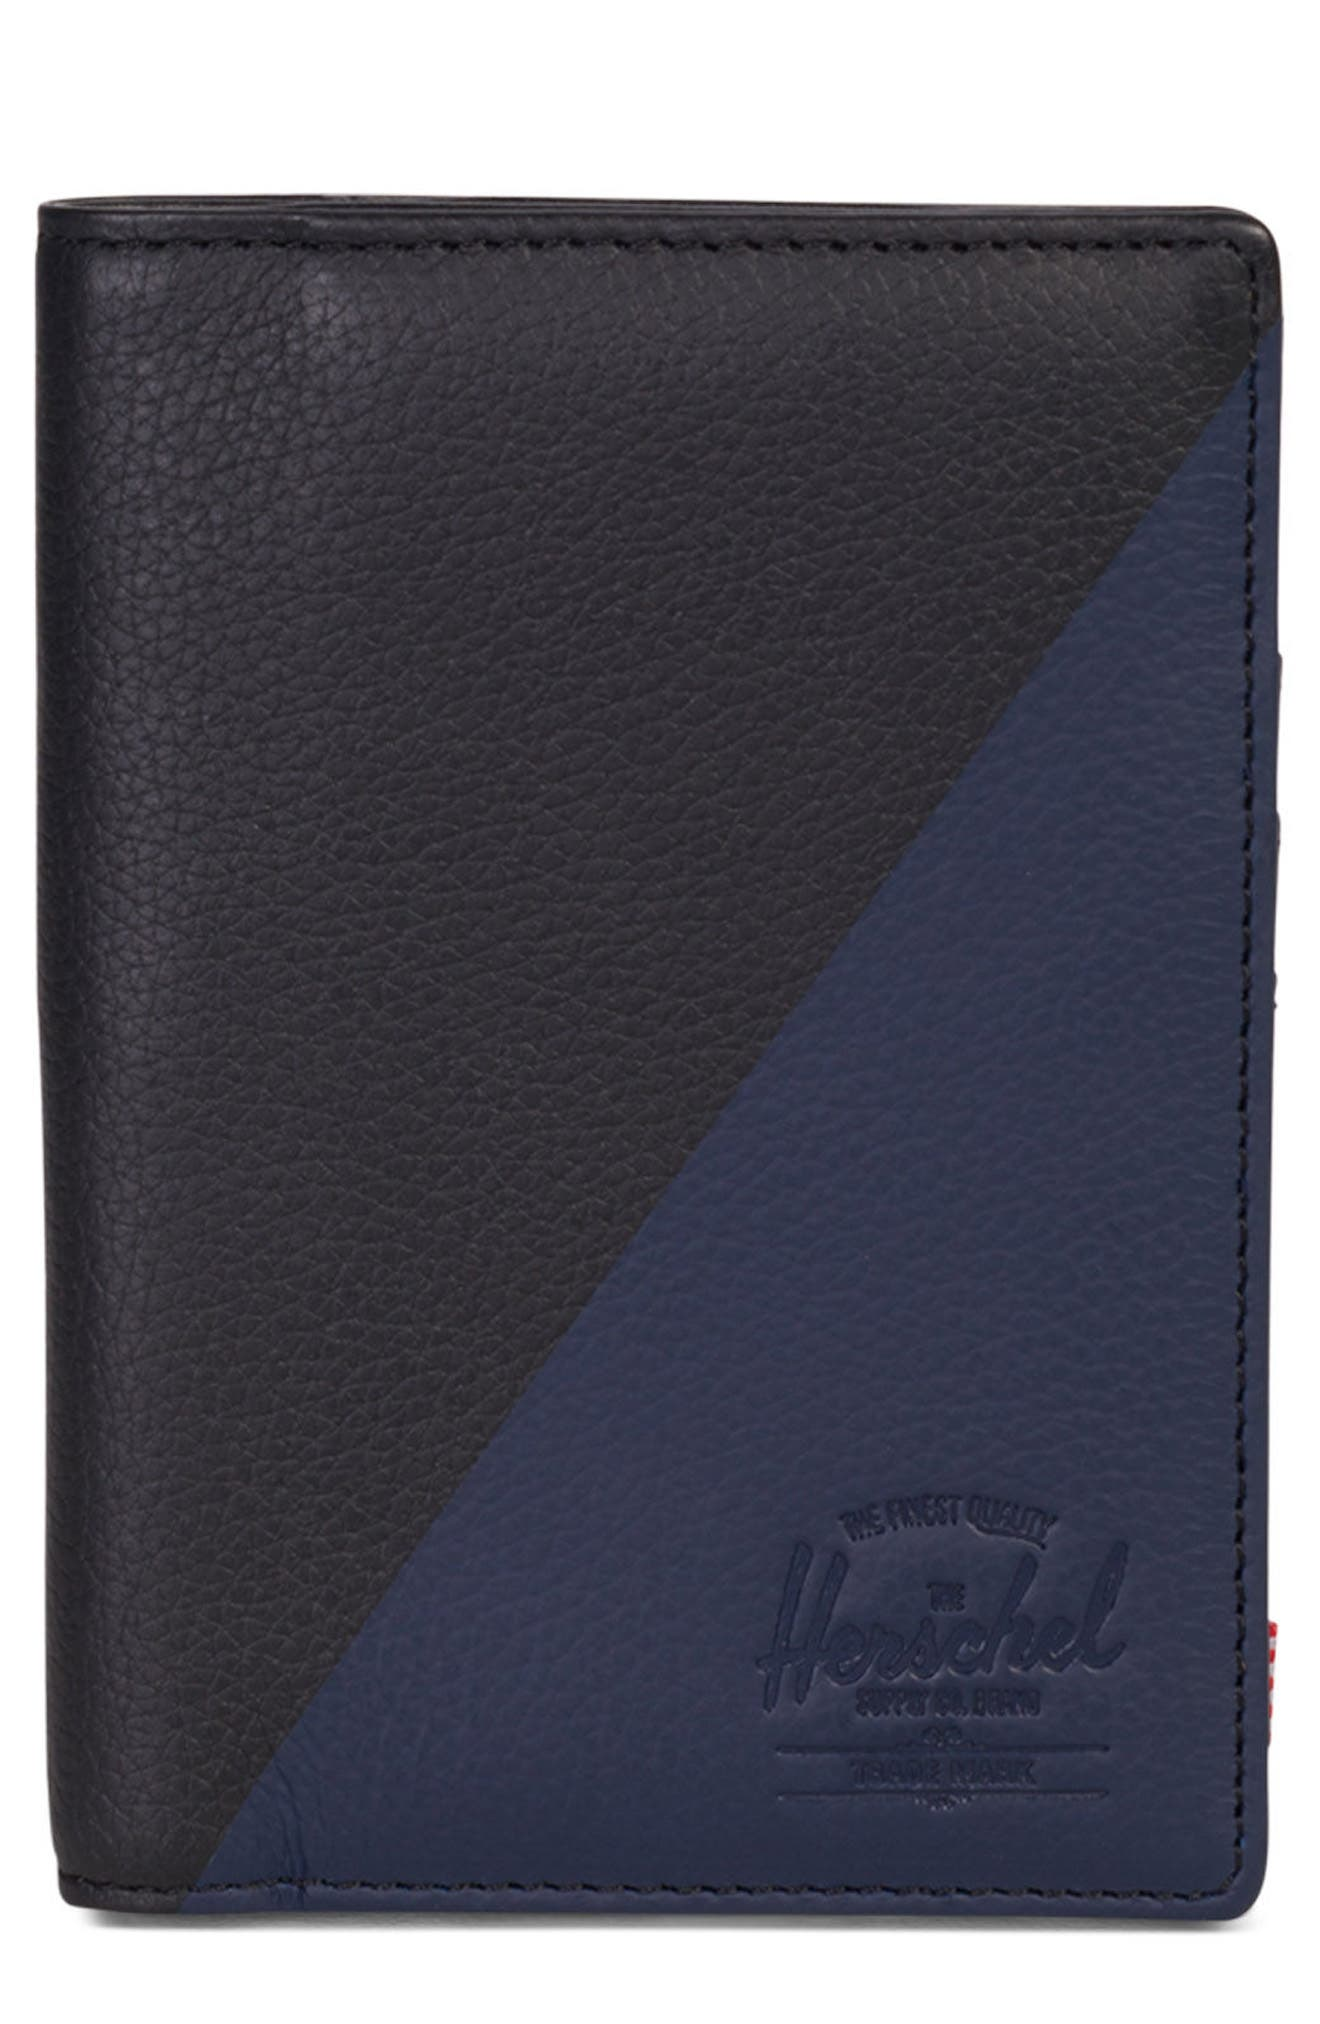 Raynor Offset Leather Wallet,                         Main,                         color, Black